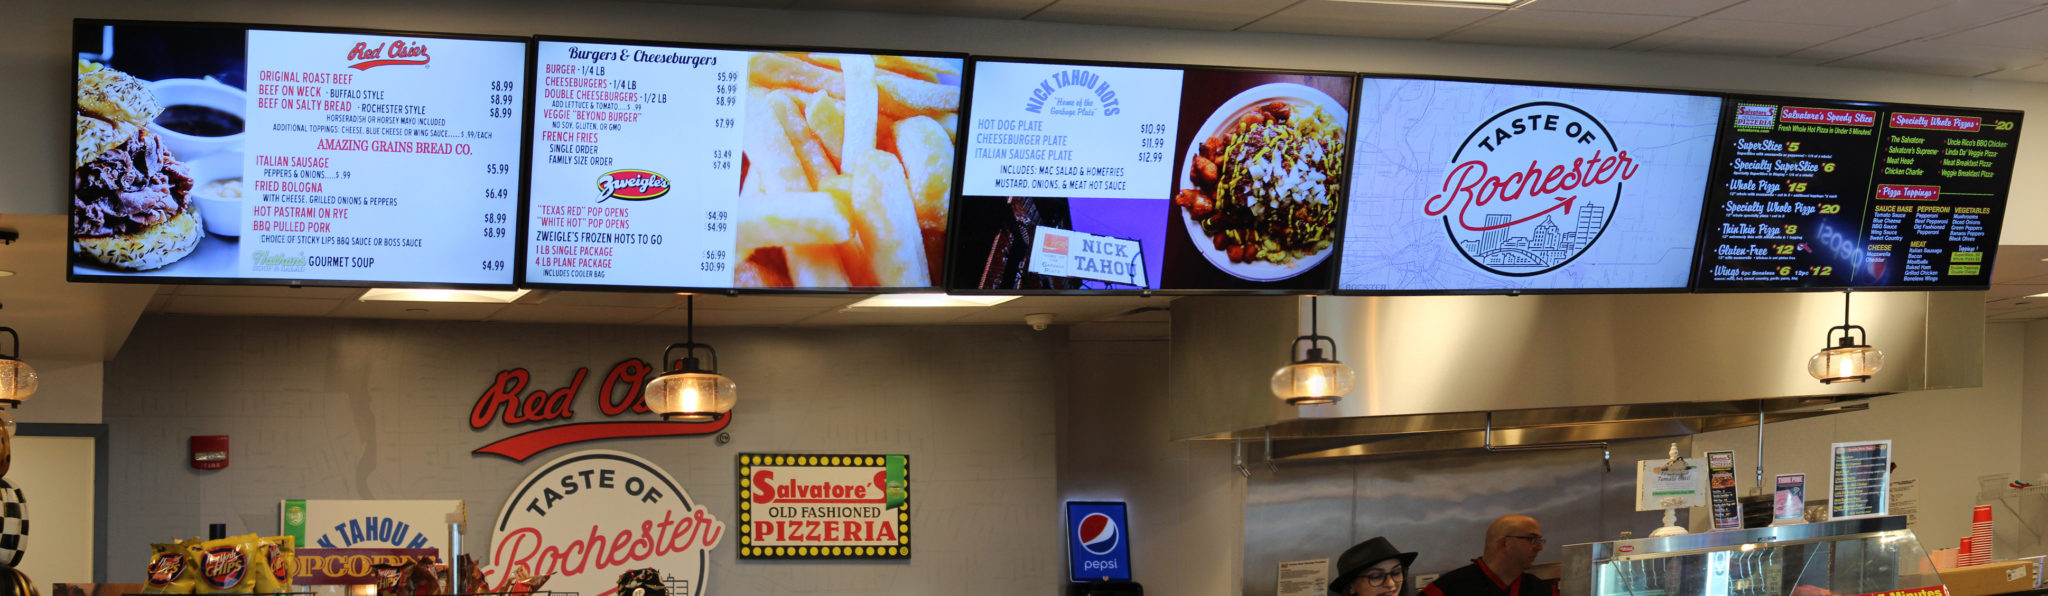 Taste of Rochester Digital Menu Boards (Rochester Airport)